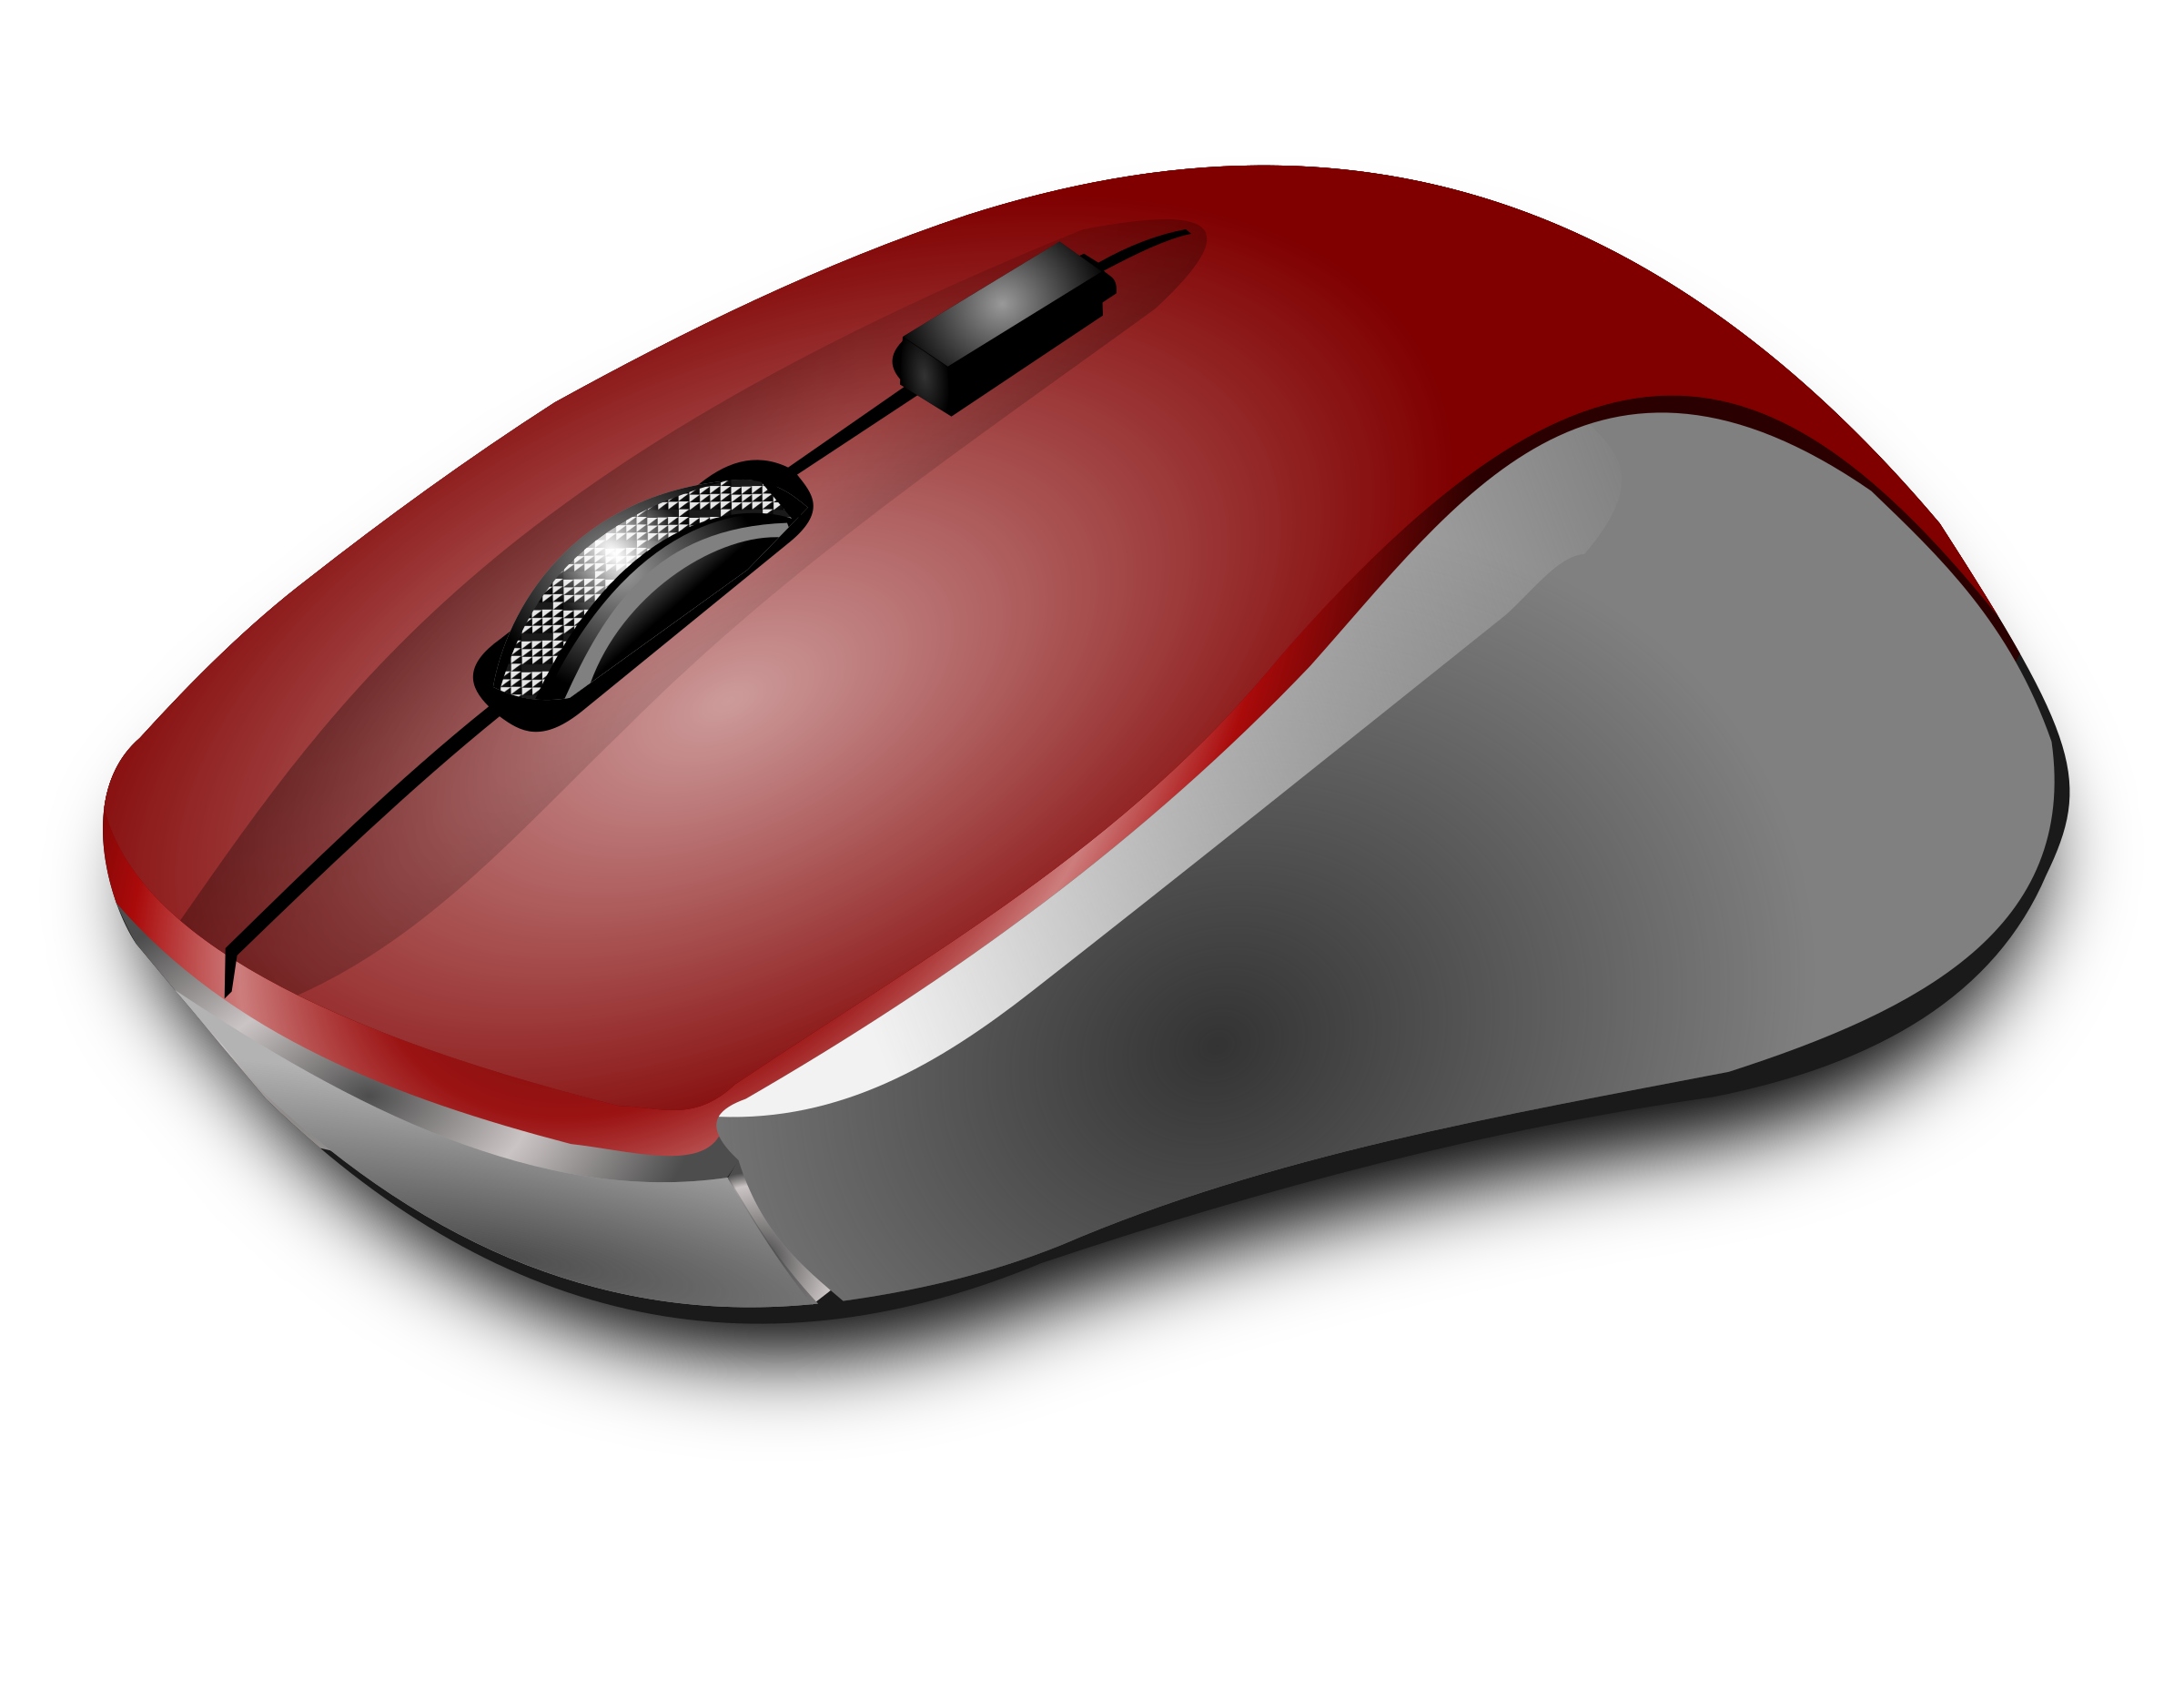 Clipart images computer mouse. Big image png